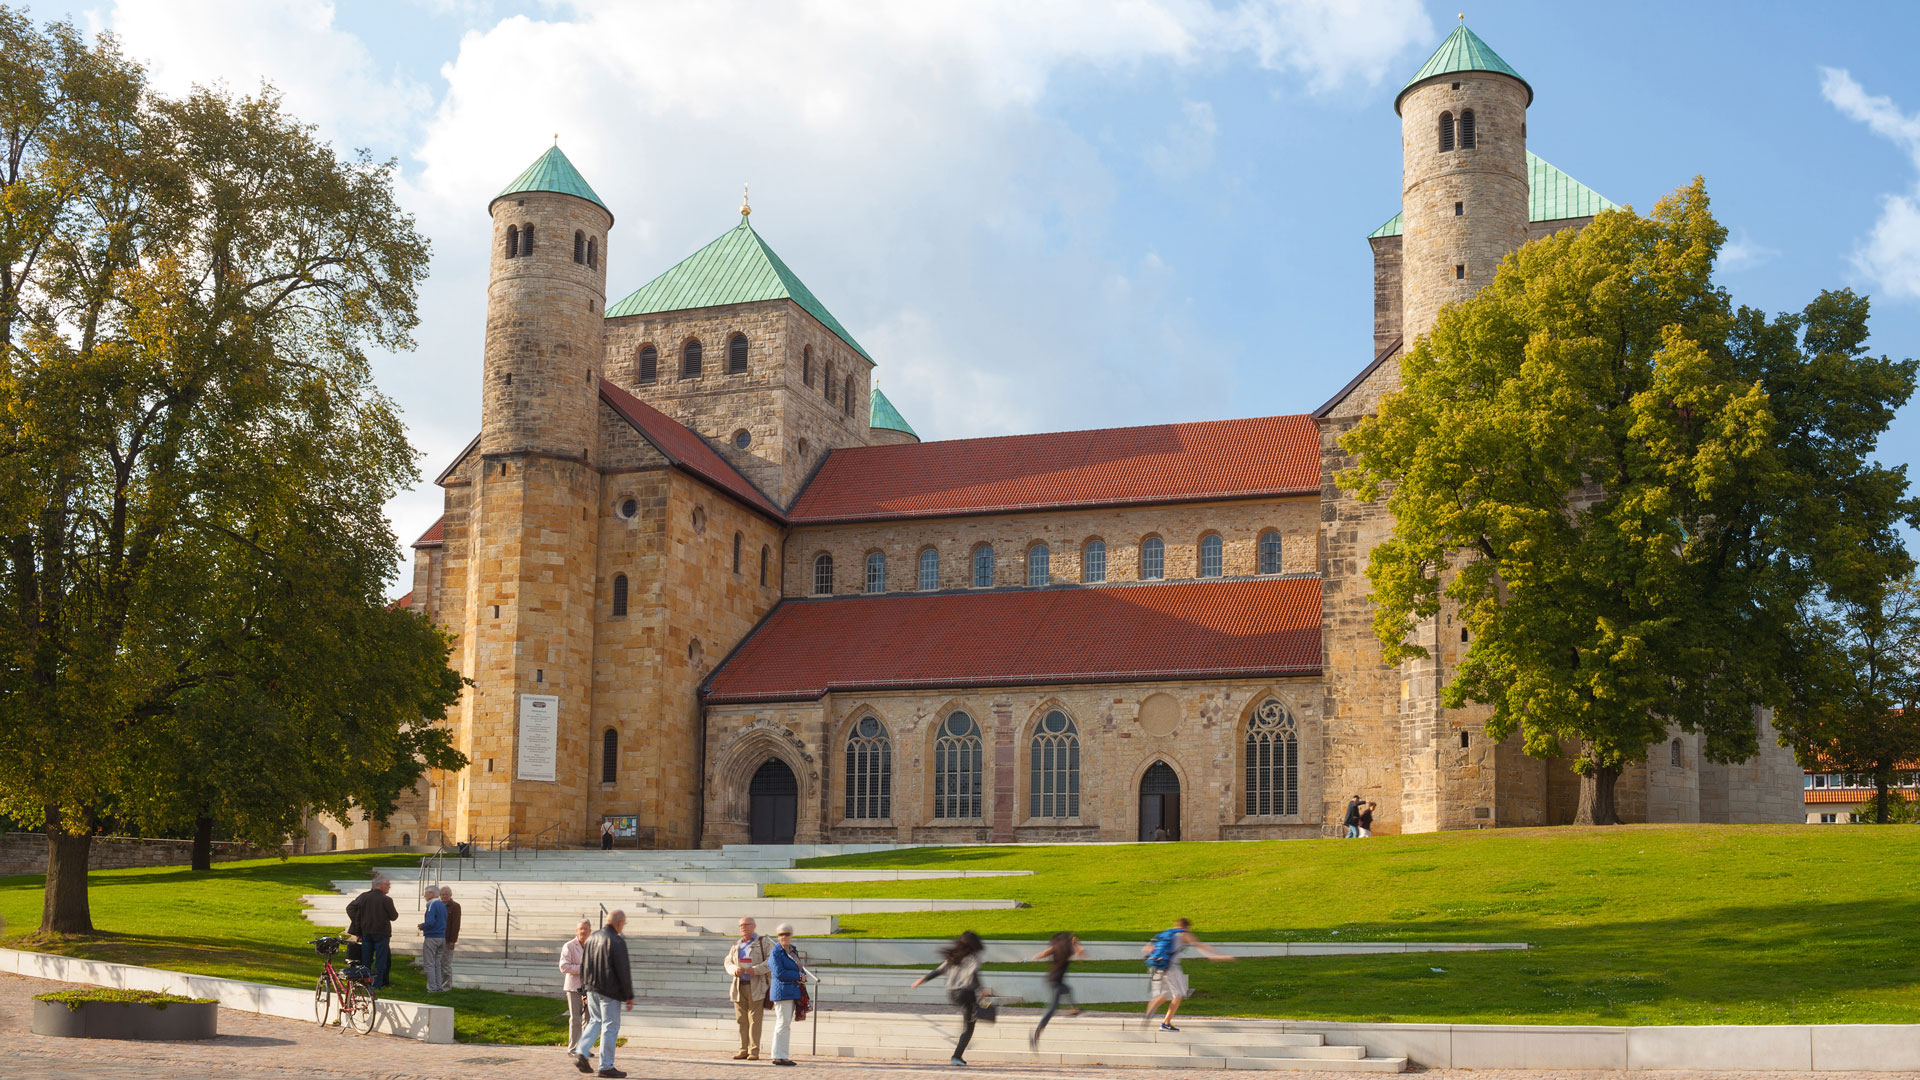 St.Michael-(c)-Hildesheim-Marketing-Foto_Nina_Weymann_Schulz_web